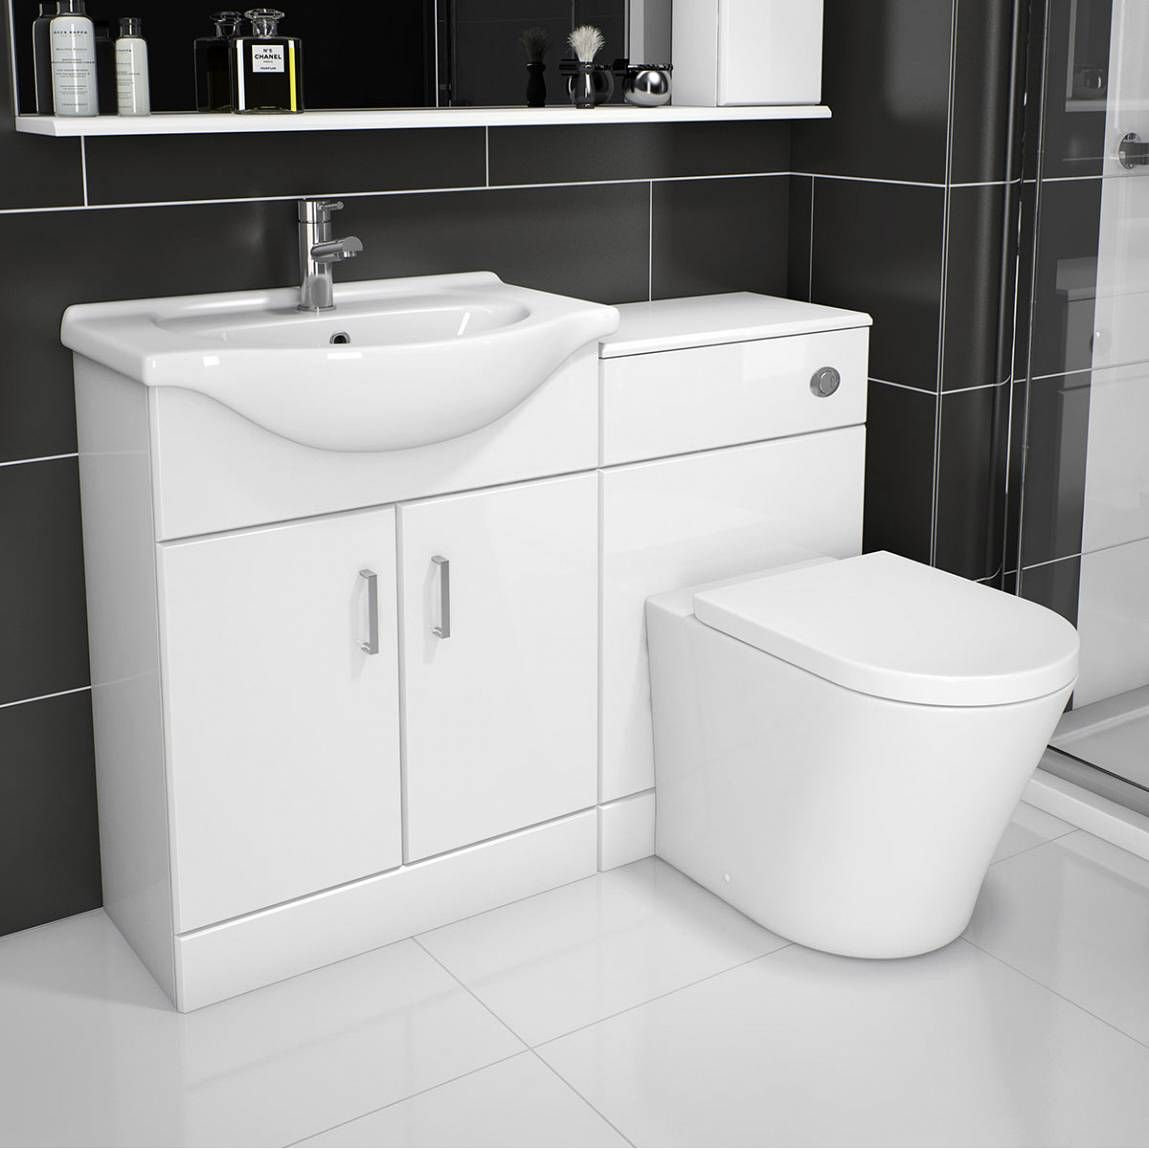 Sienna Arc White Gloss Combination Vanity Unit Small Victoria Plumb 259 1040mm 450mm Sink